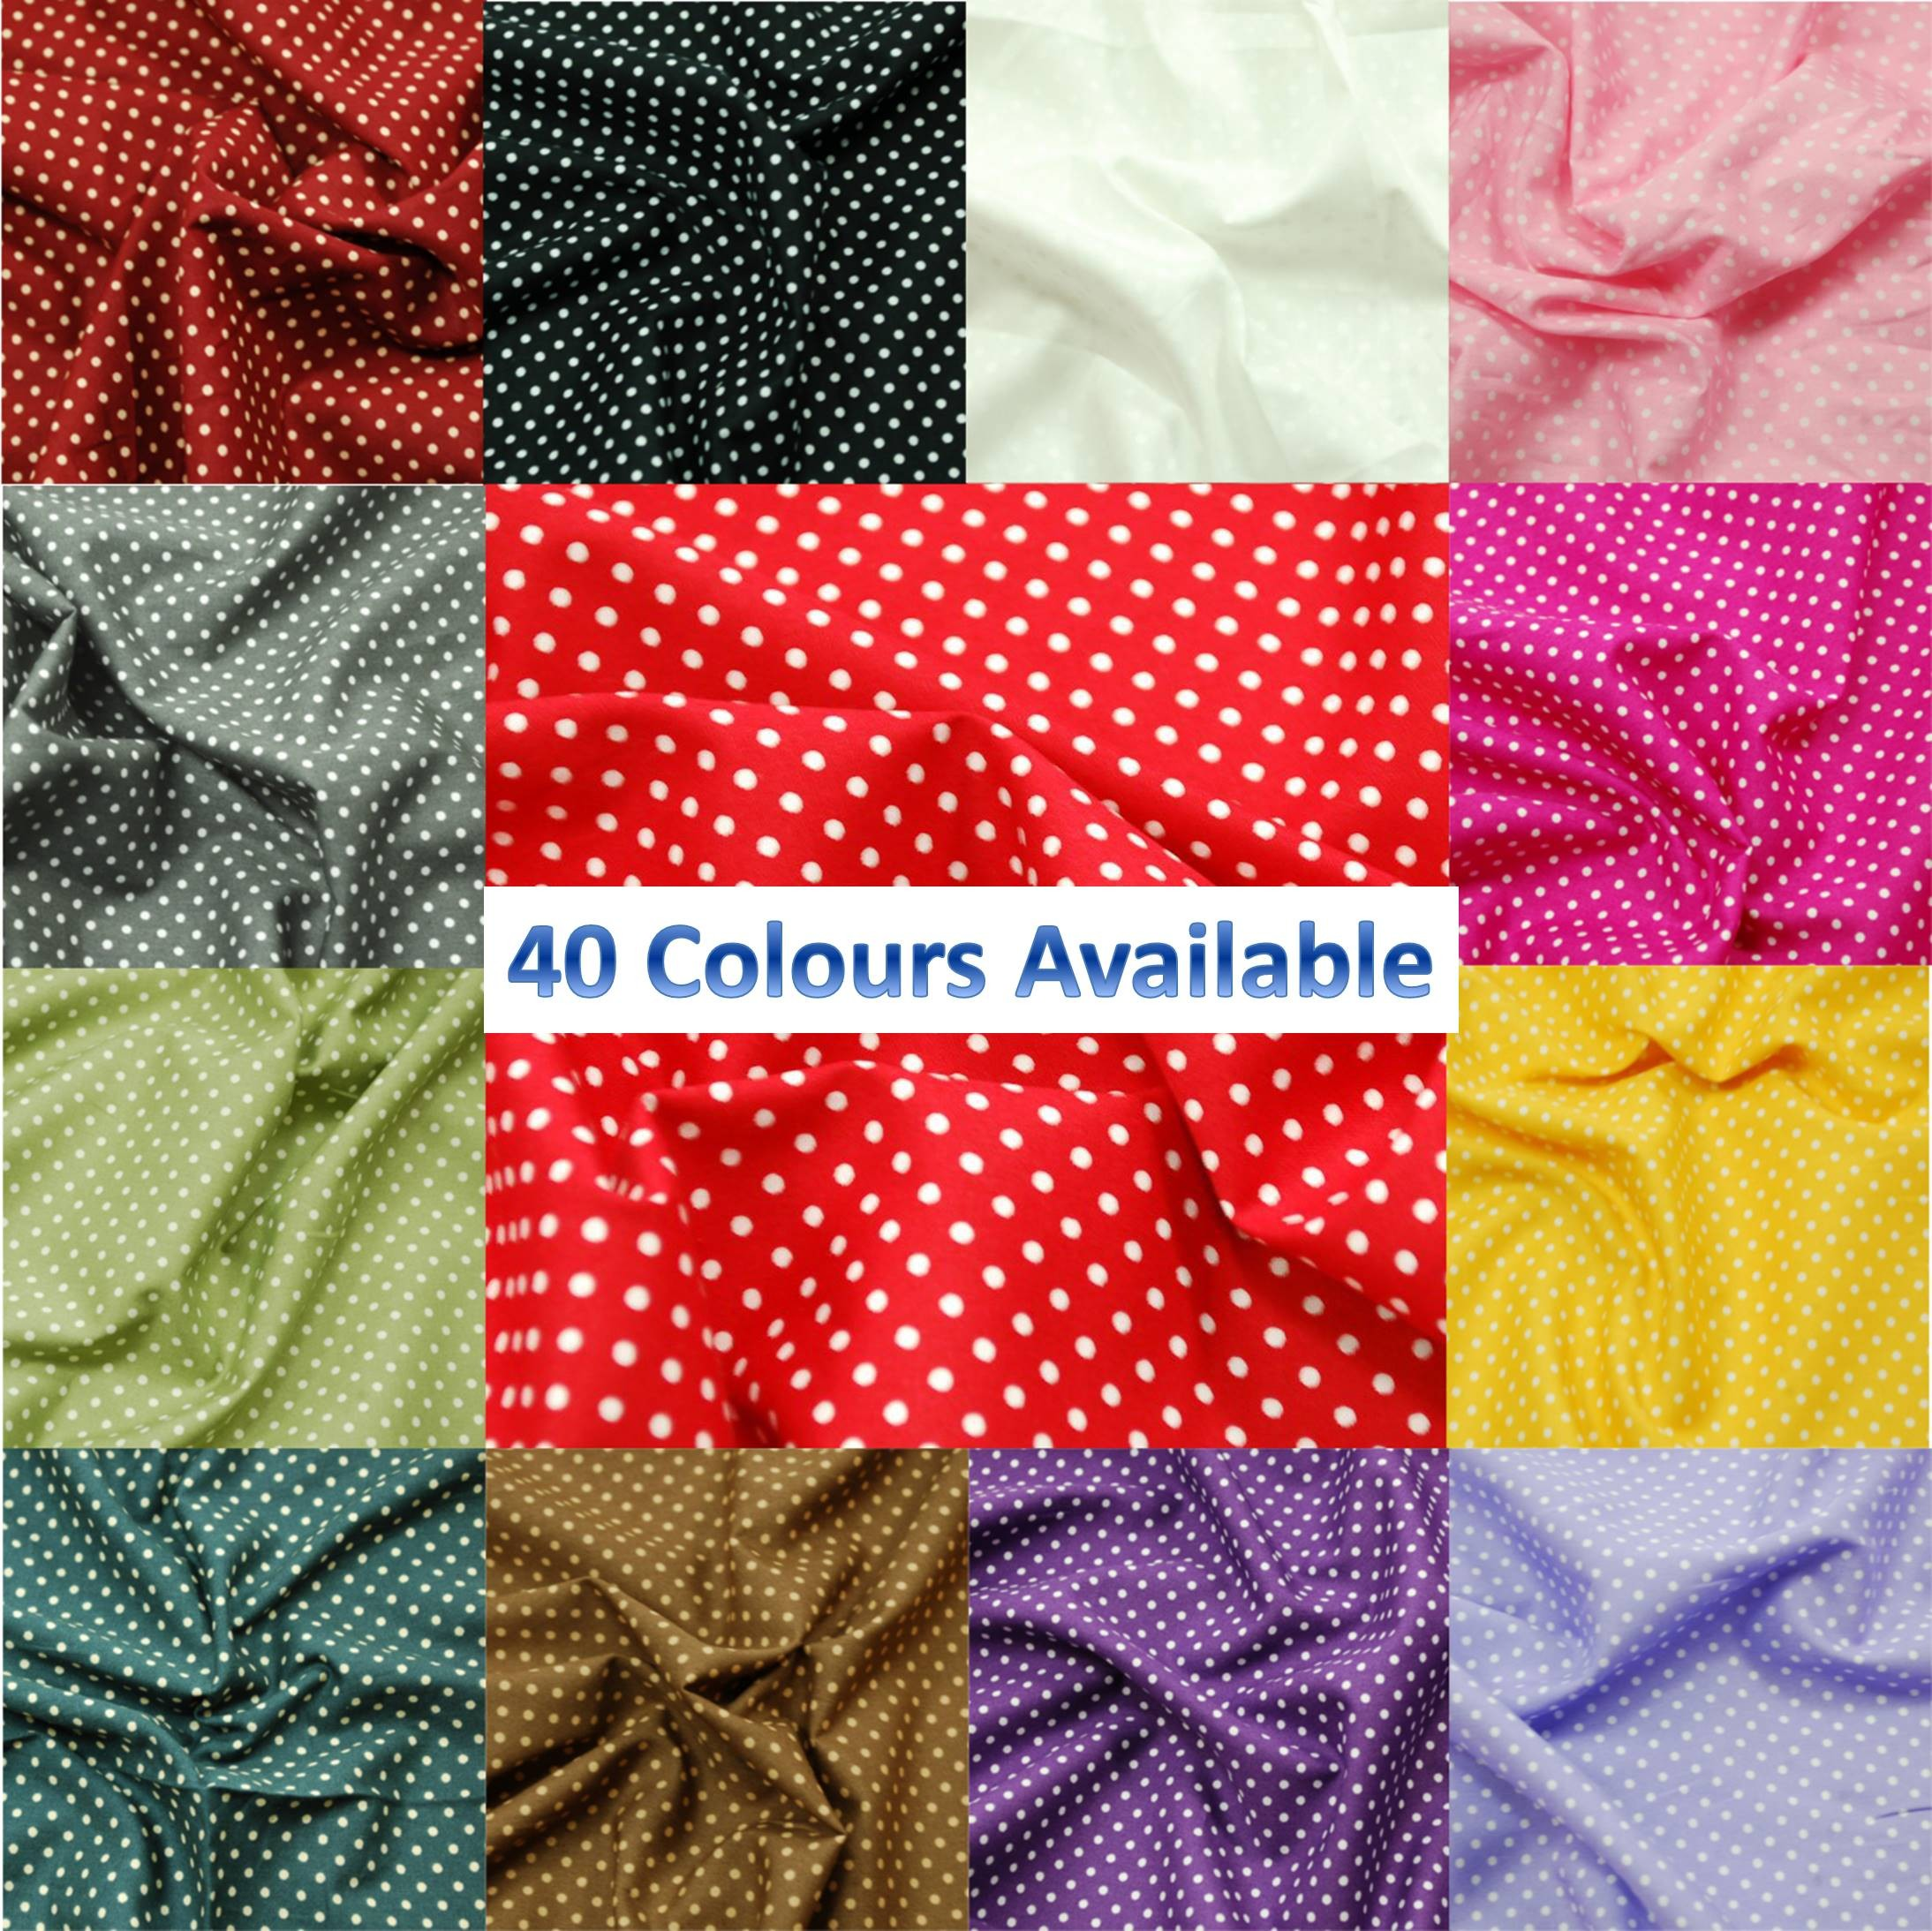 Pink 3mm Spots Polka Dots Various Colours 100% Cotton Poplin Fabric